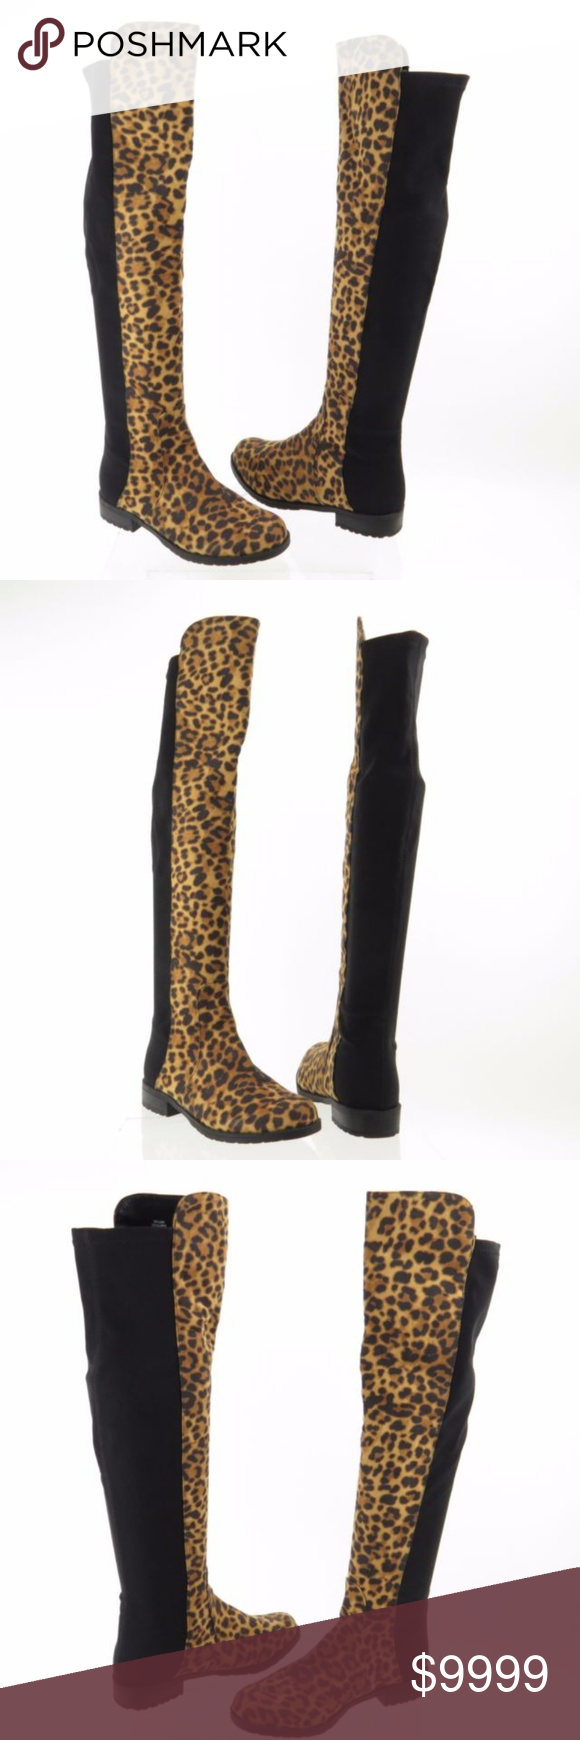 fcb4c524ef8 Unisa Gillean cheetah print thigh high boots♥ Like New